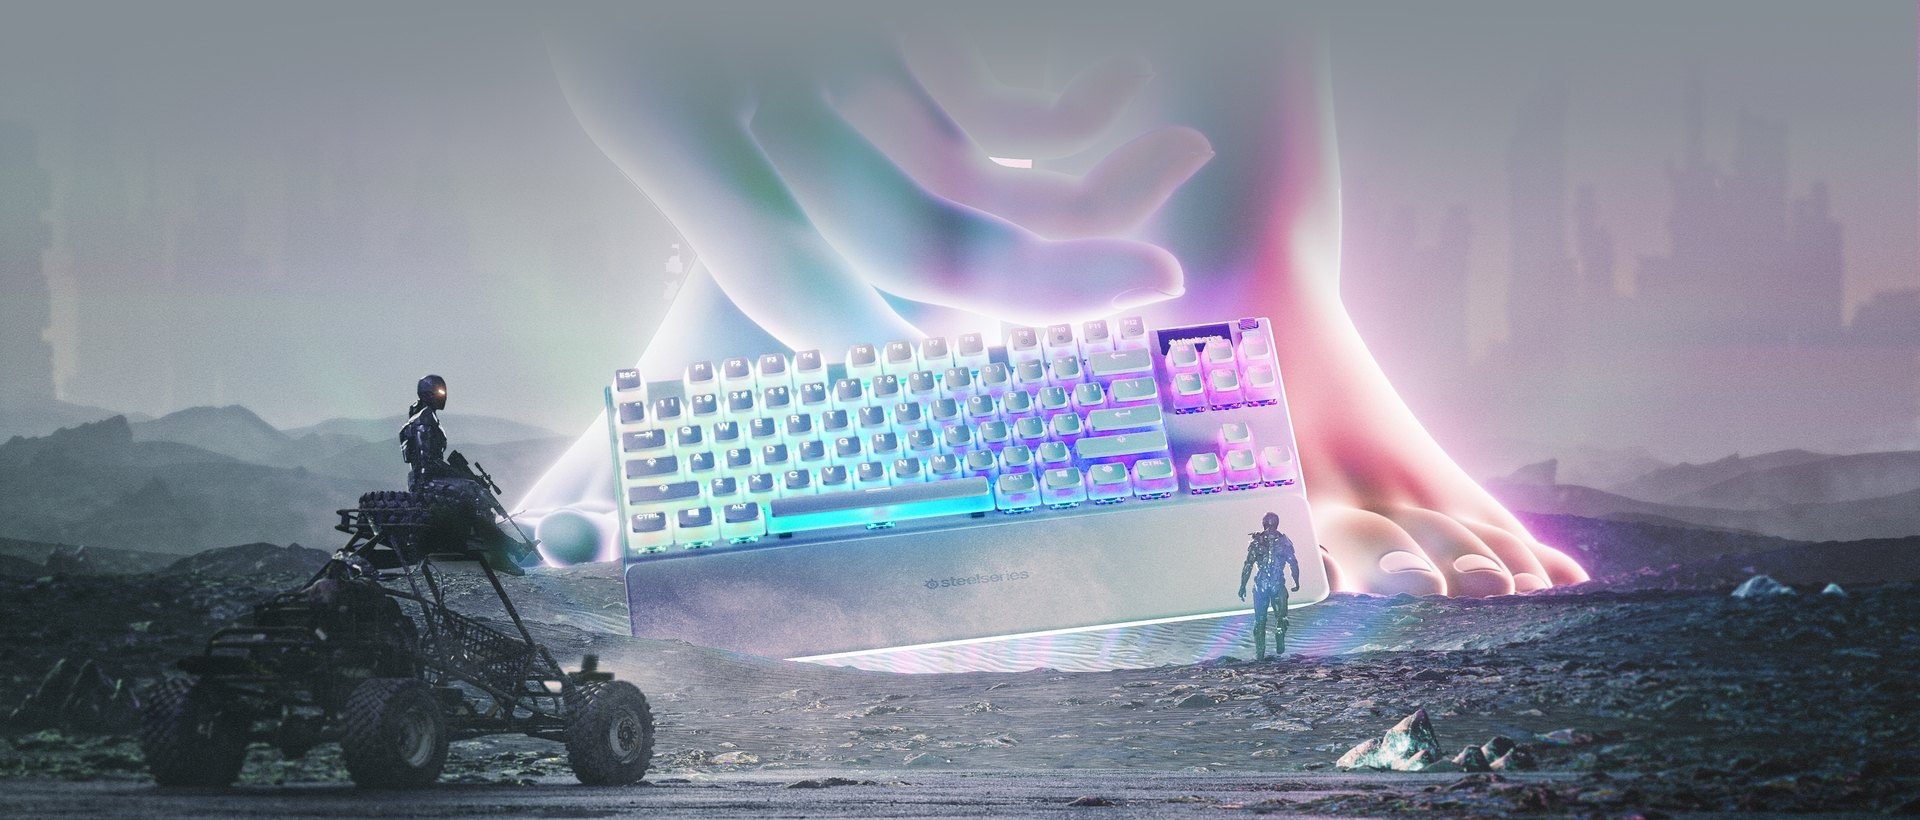 A giant otherworldly being stands before a human, placing an Apex 7 TKL Ghost keyboard before them.